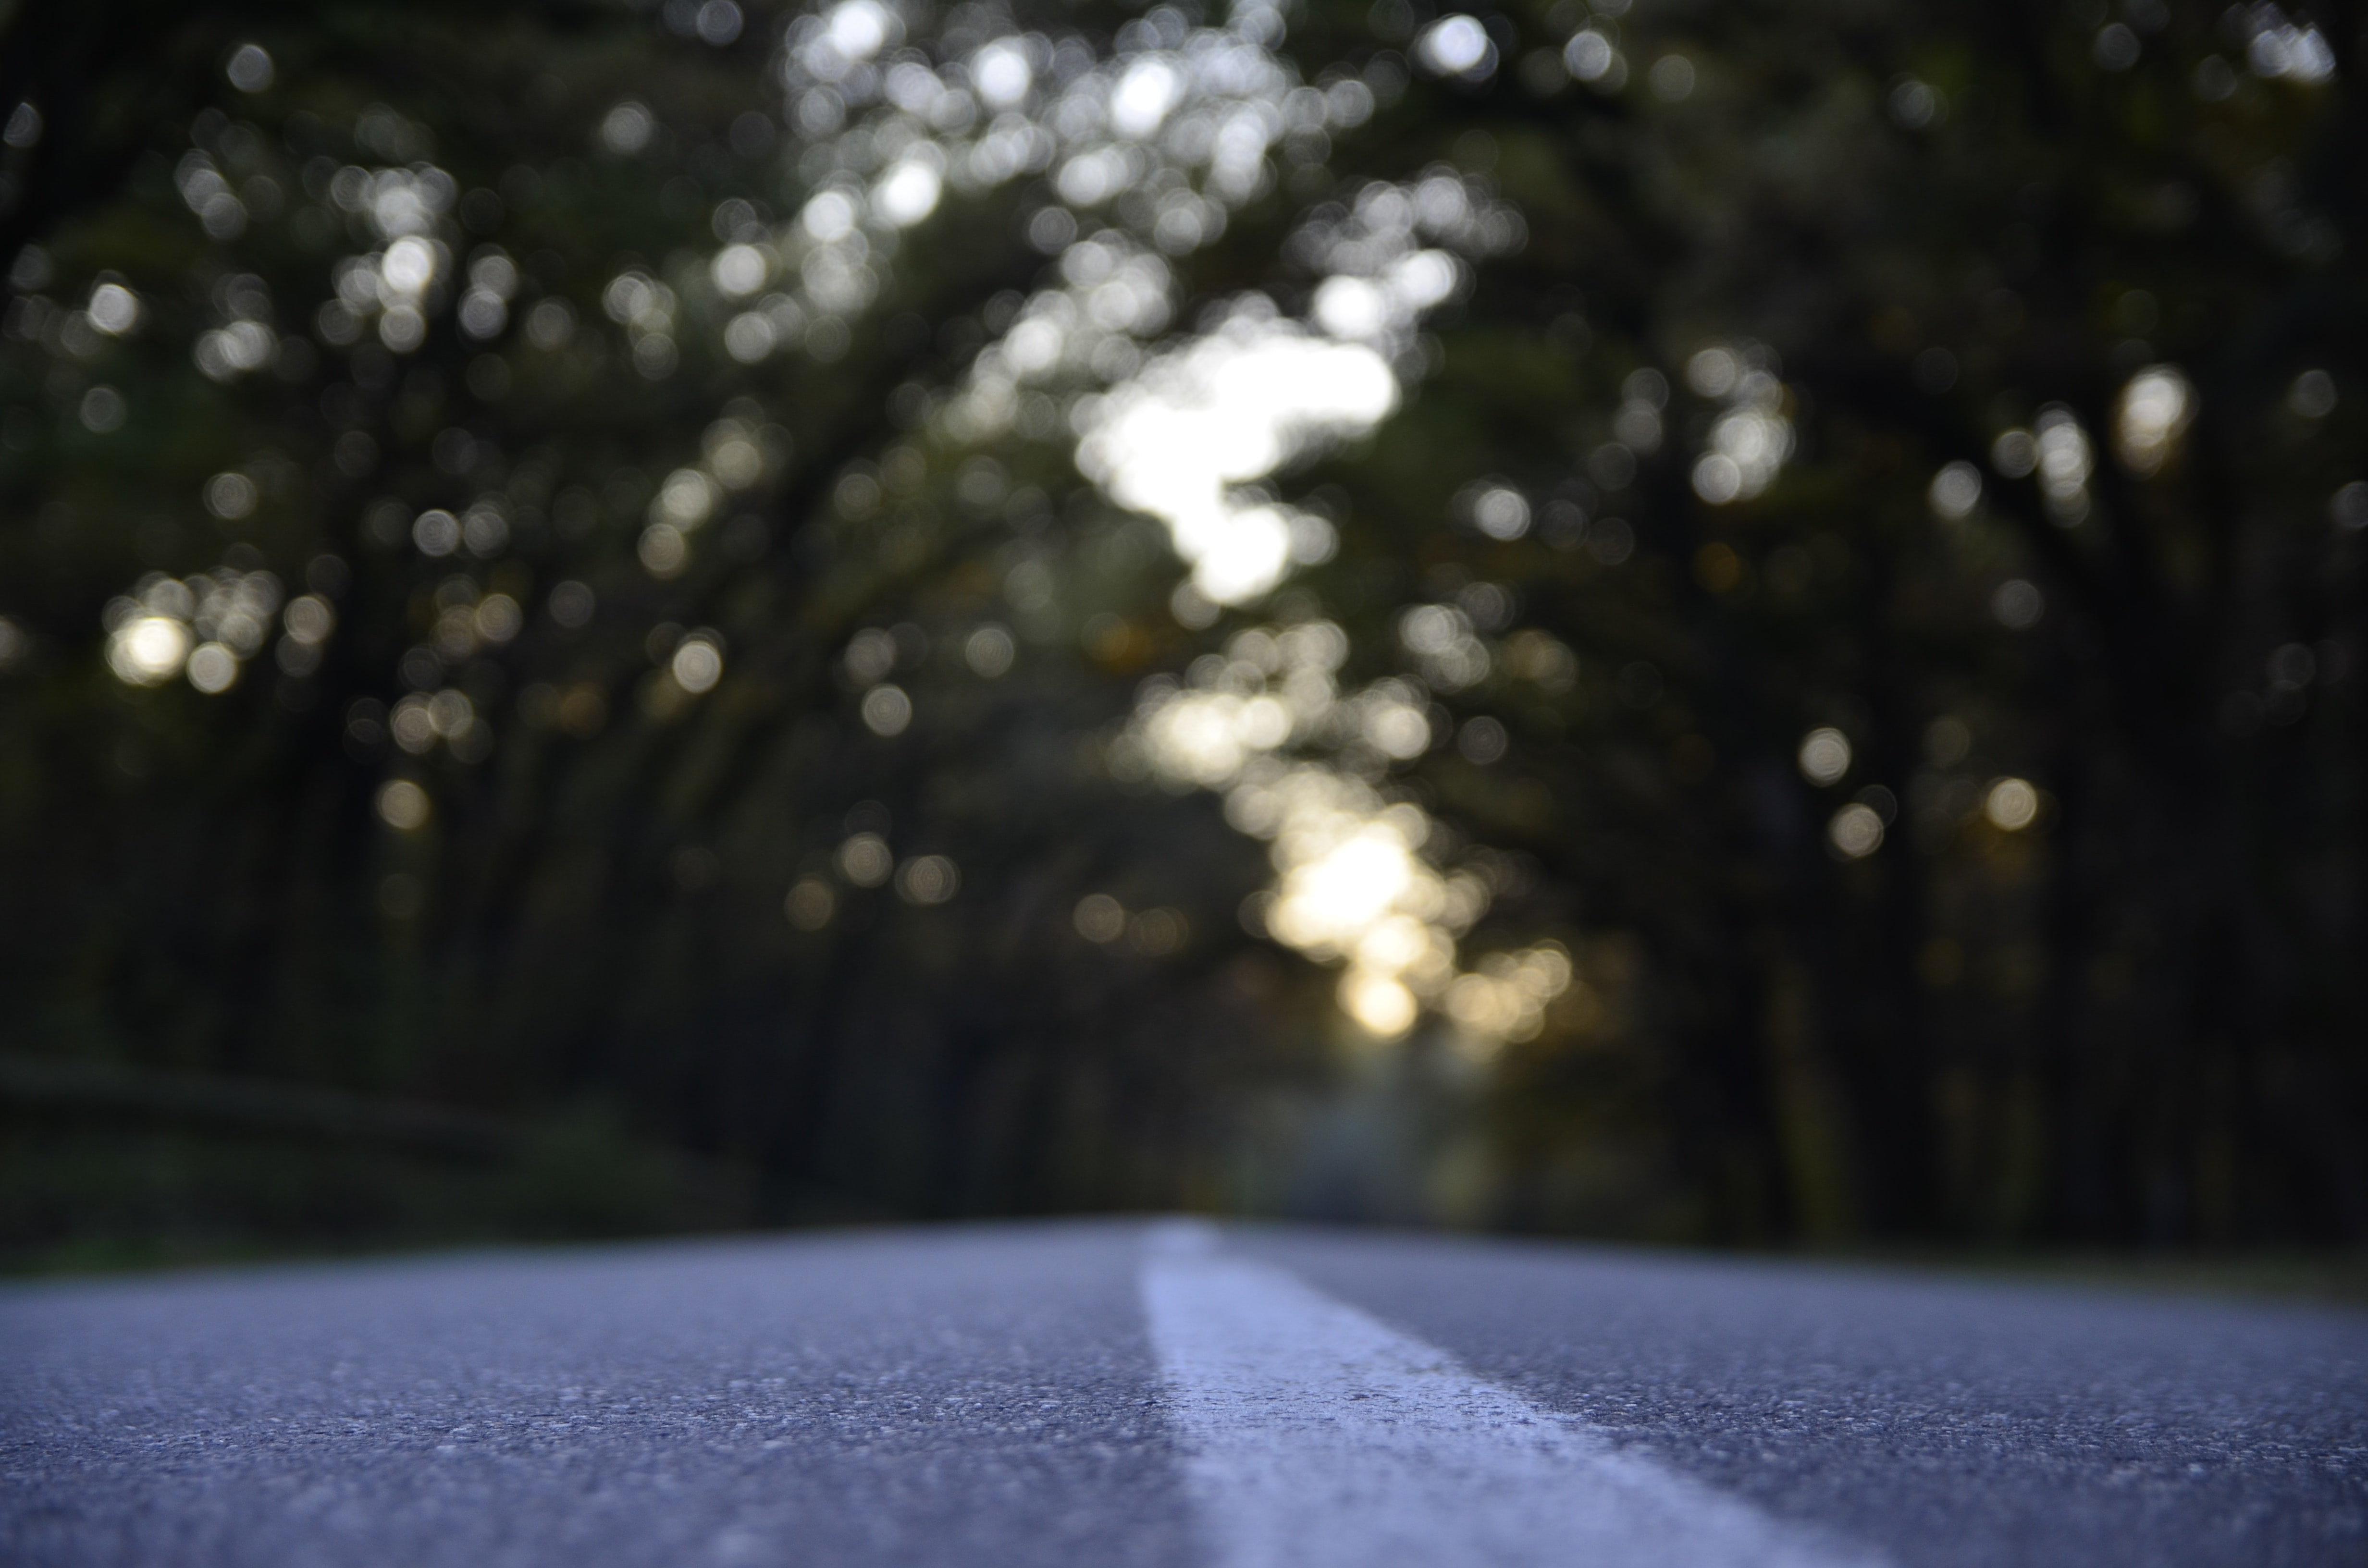 A low shot of the surface of an asphalt road with bokeh effect in the background